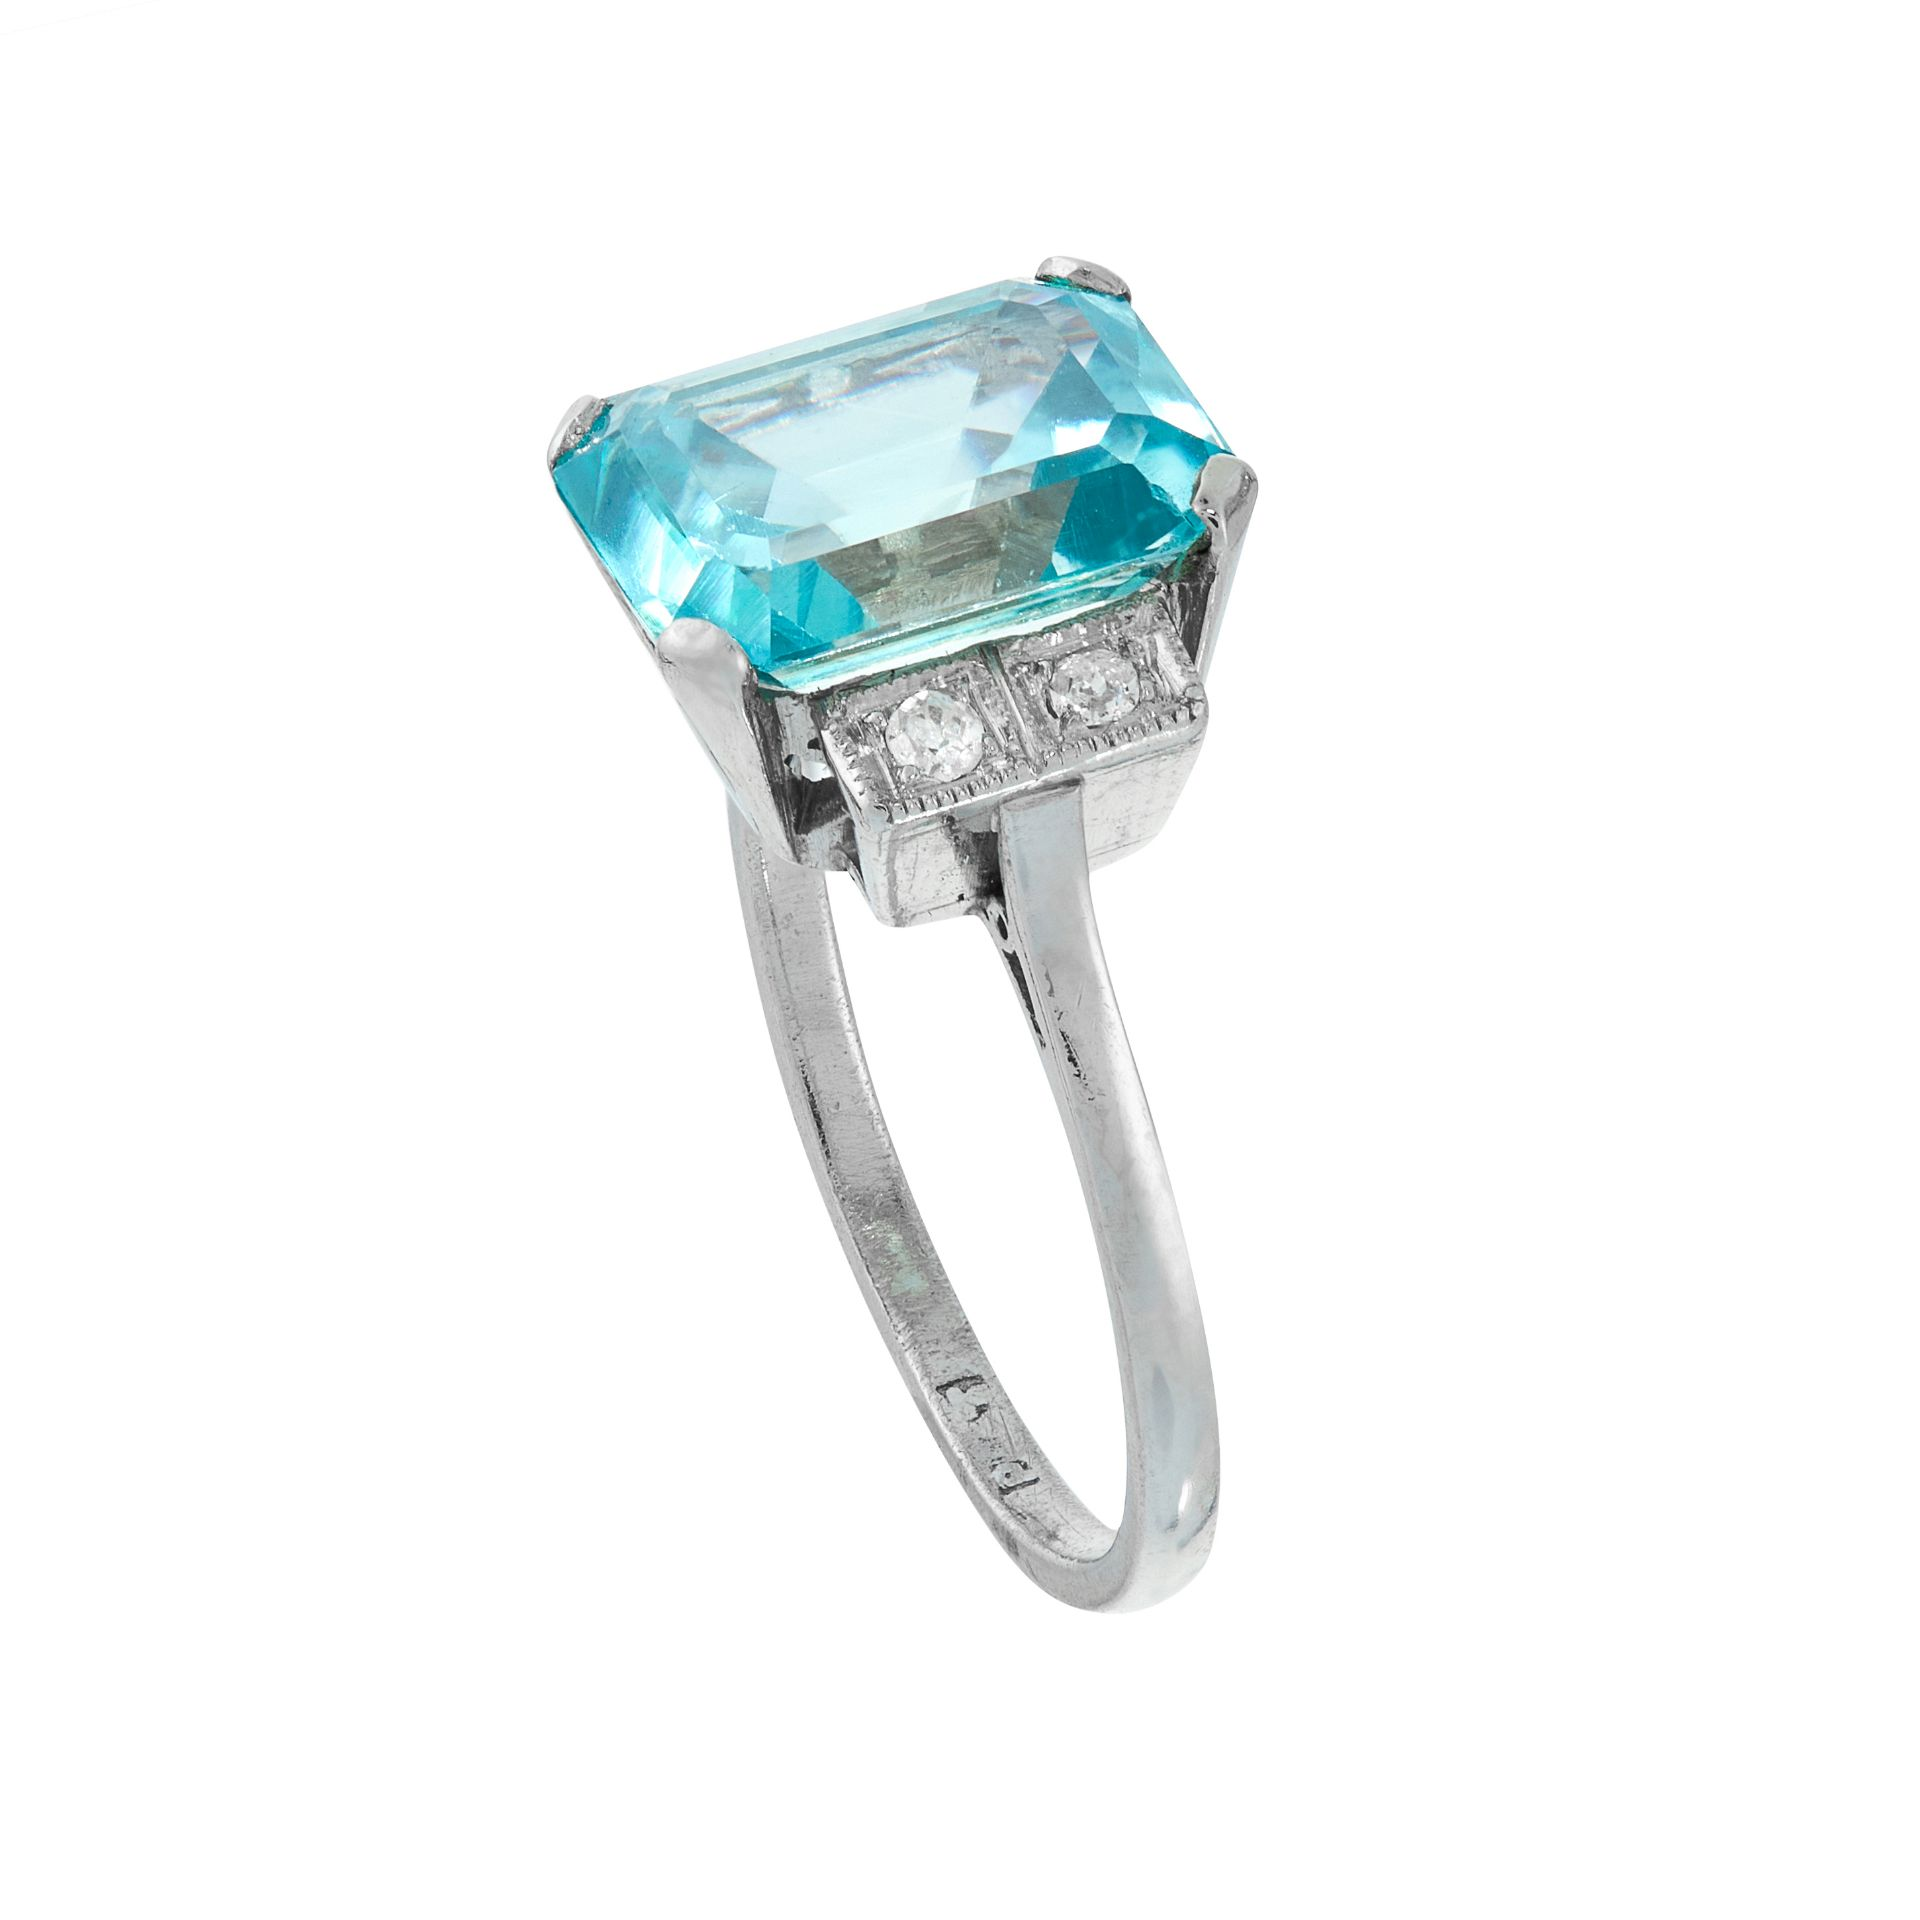 A BLUE ZIRCON AND DIAMOND DRESS RING, EARLY 20TH CENTURY in platinum, set with an emerald cut blue - Bild 2 aus 2